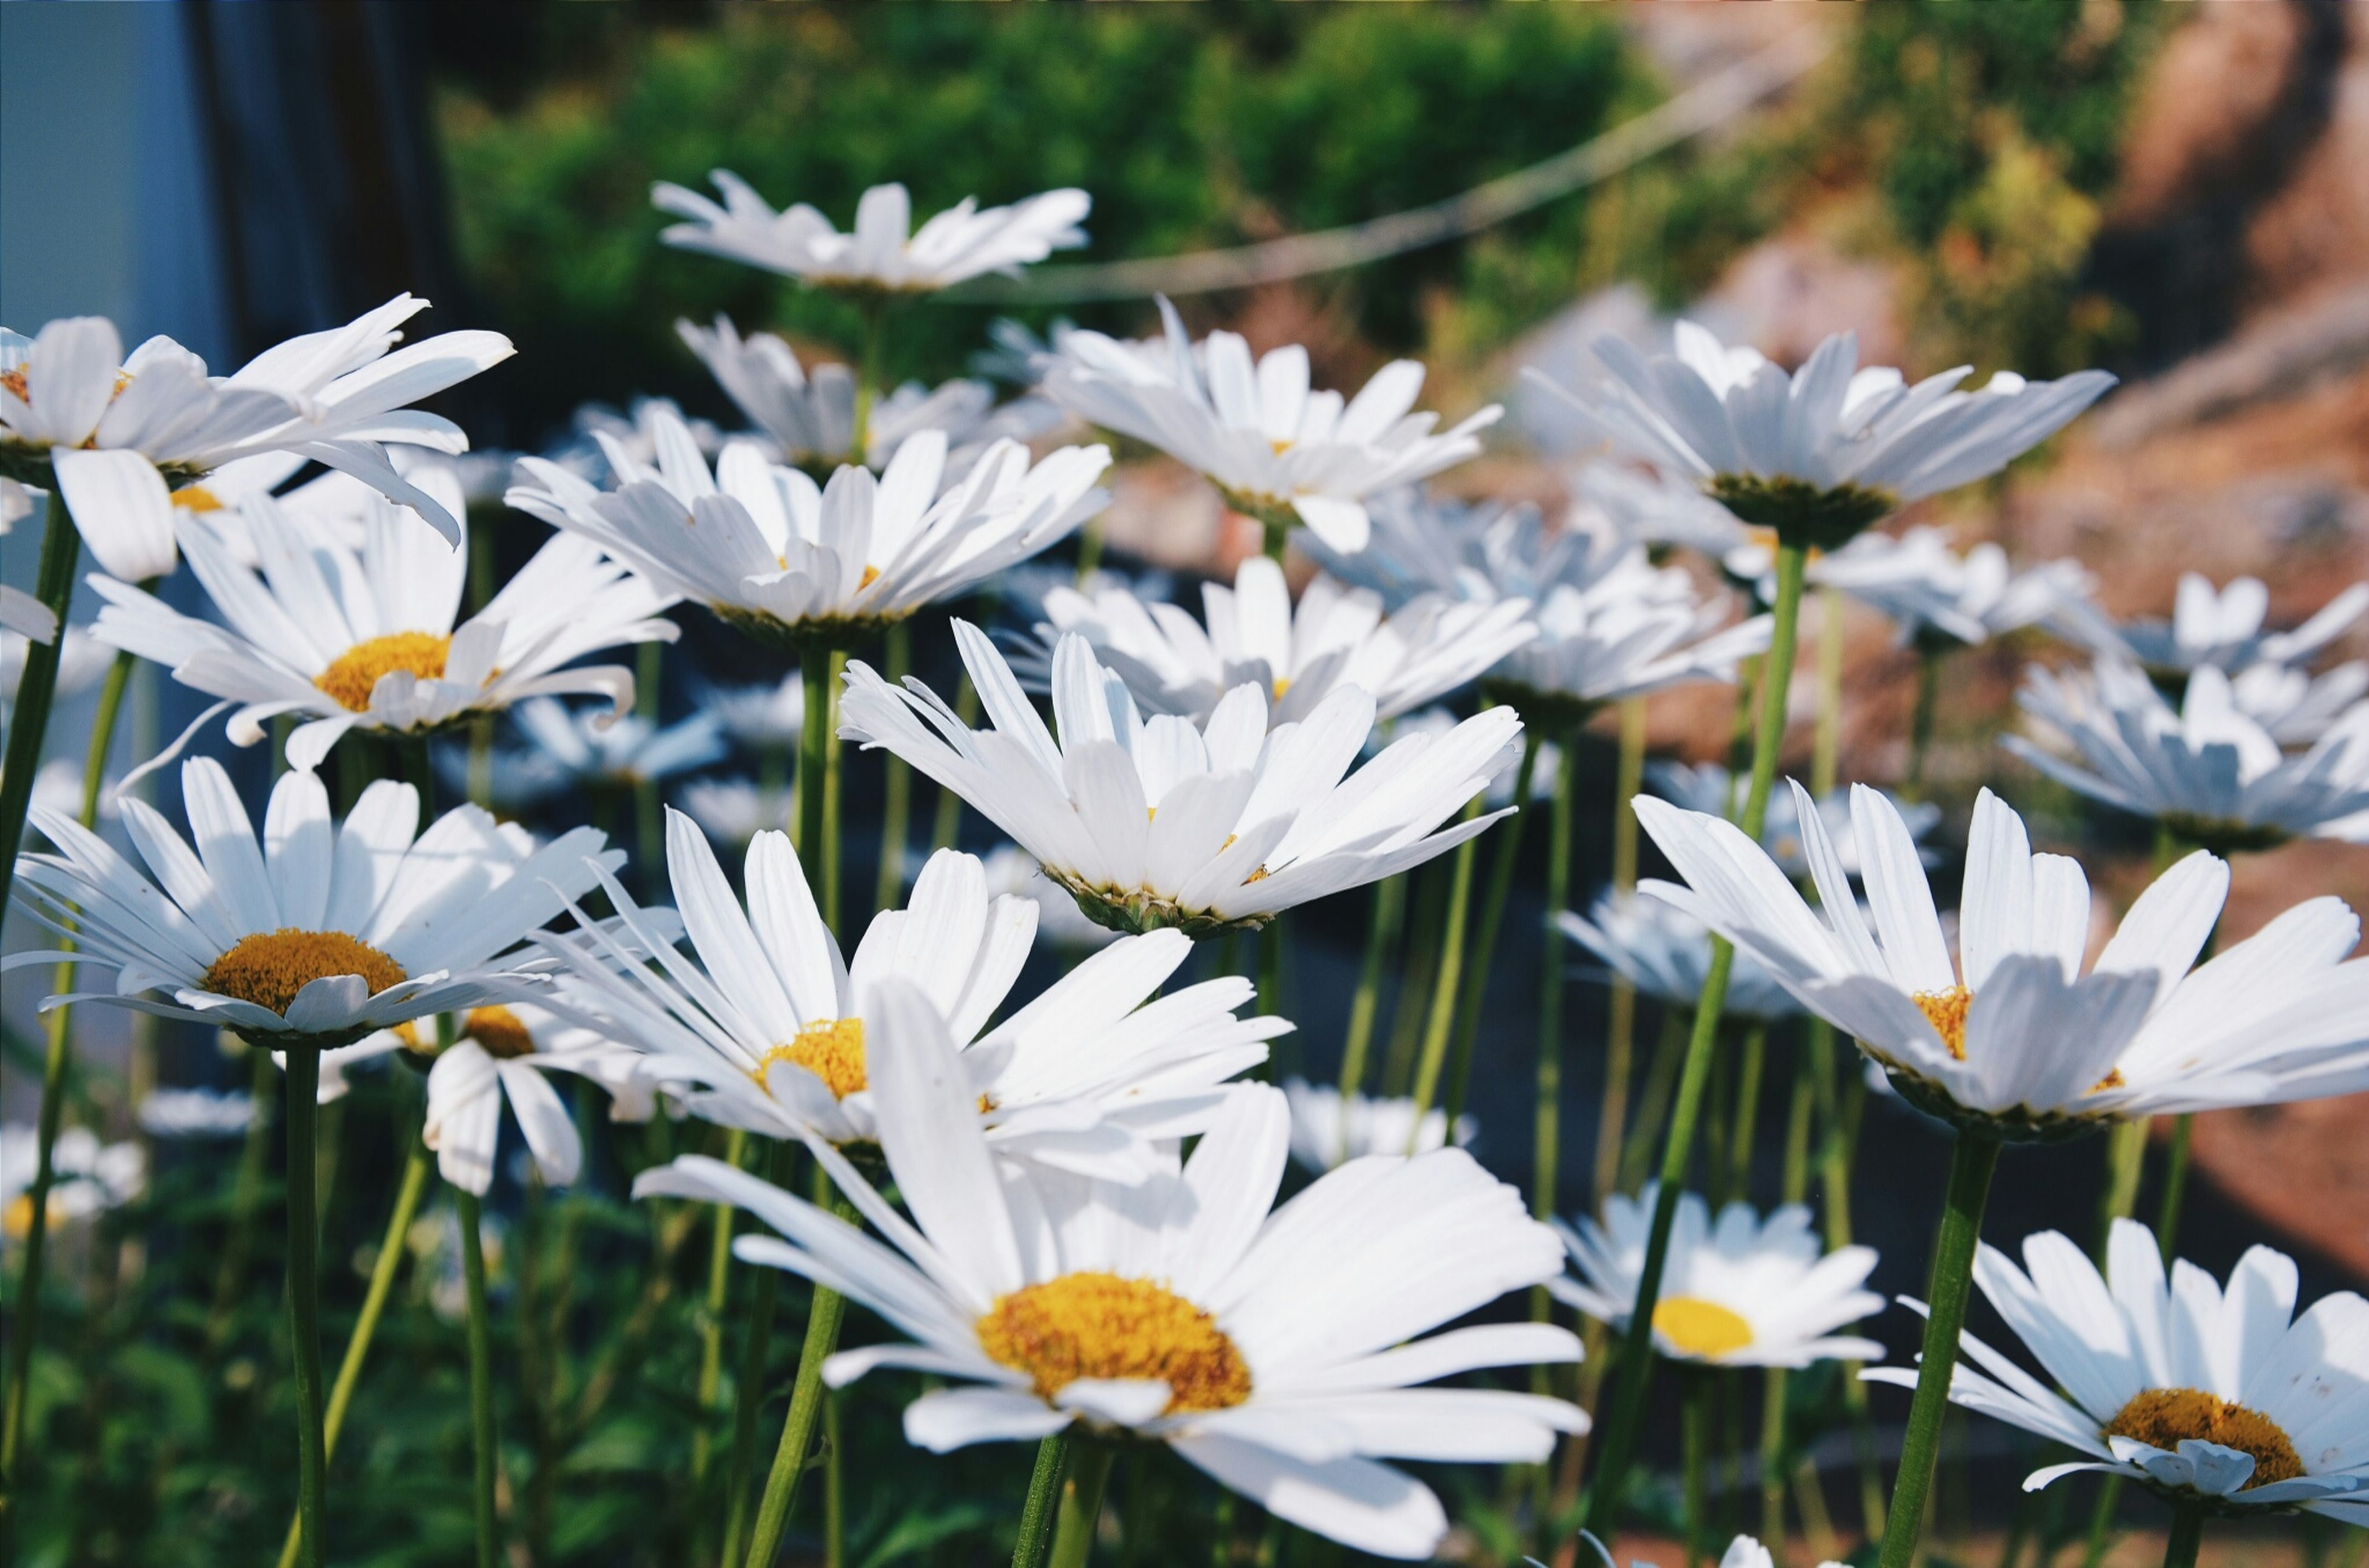 flower, white color, fragility, freshness, petal, growth, focus on foreground, flower head, blooming, beauty in nature, nature, plant, close-up, pollen, white, in bloom, stem, day, outdoors, daisy